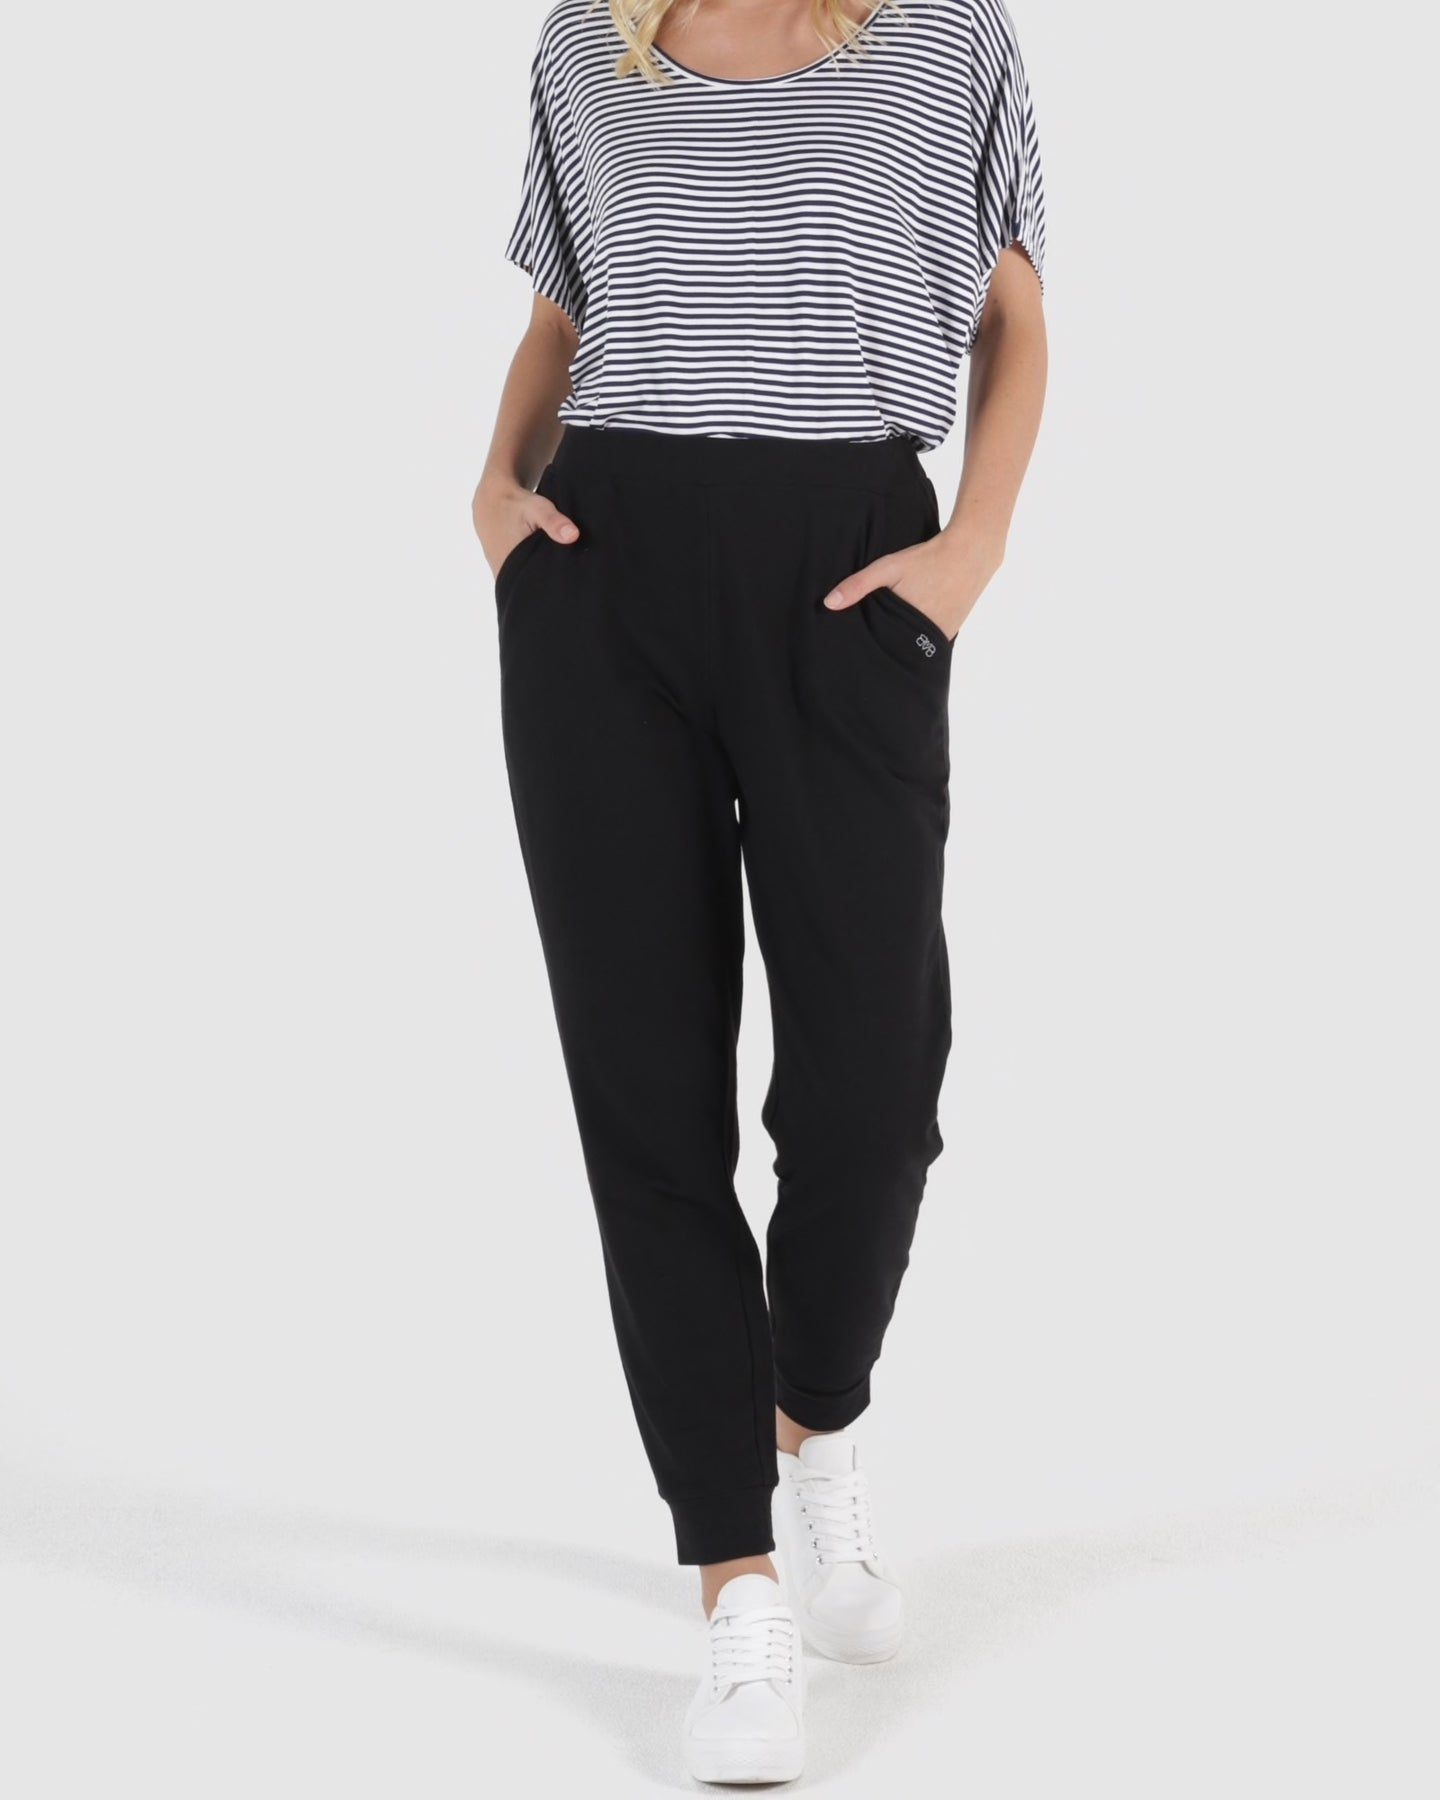 Linday jogger black Betty basics